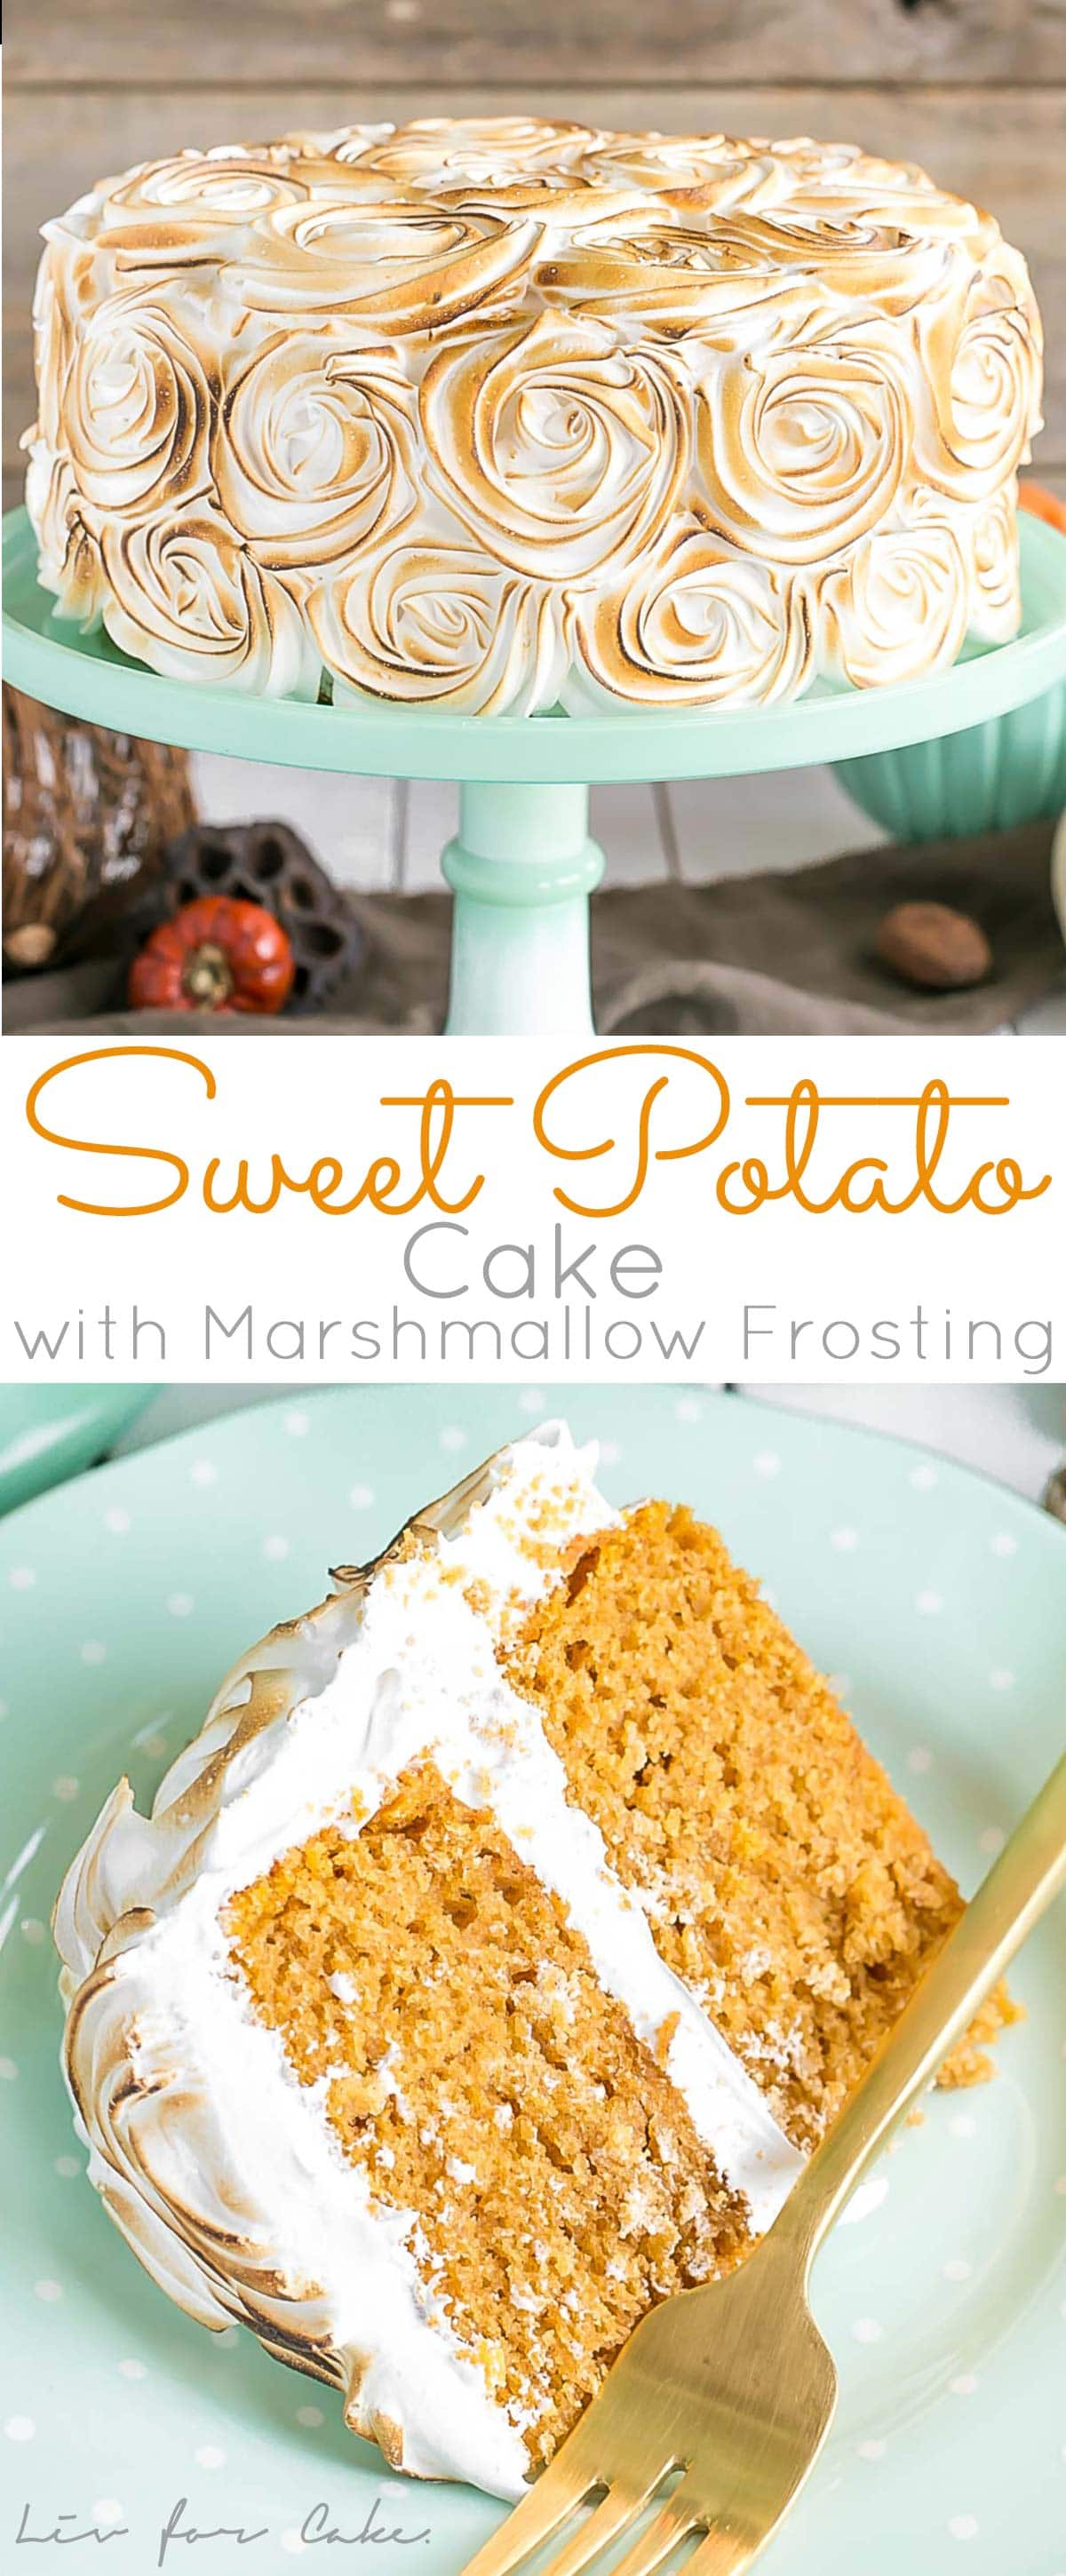 Transform a traditional Thanksgiving side dish into the perfect dessert with this Sweet Potato Cake with Marshmallow Frosting. | livforcake.com